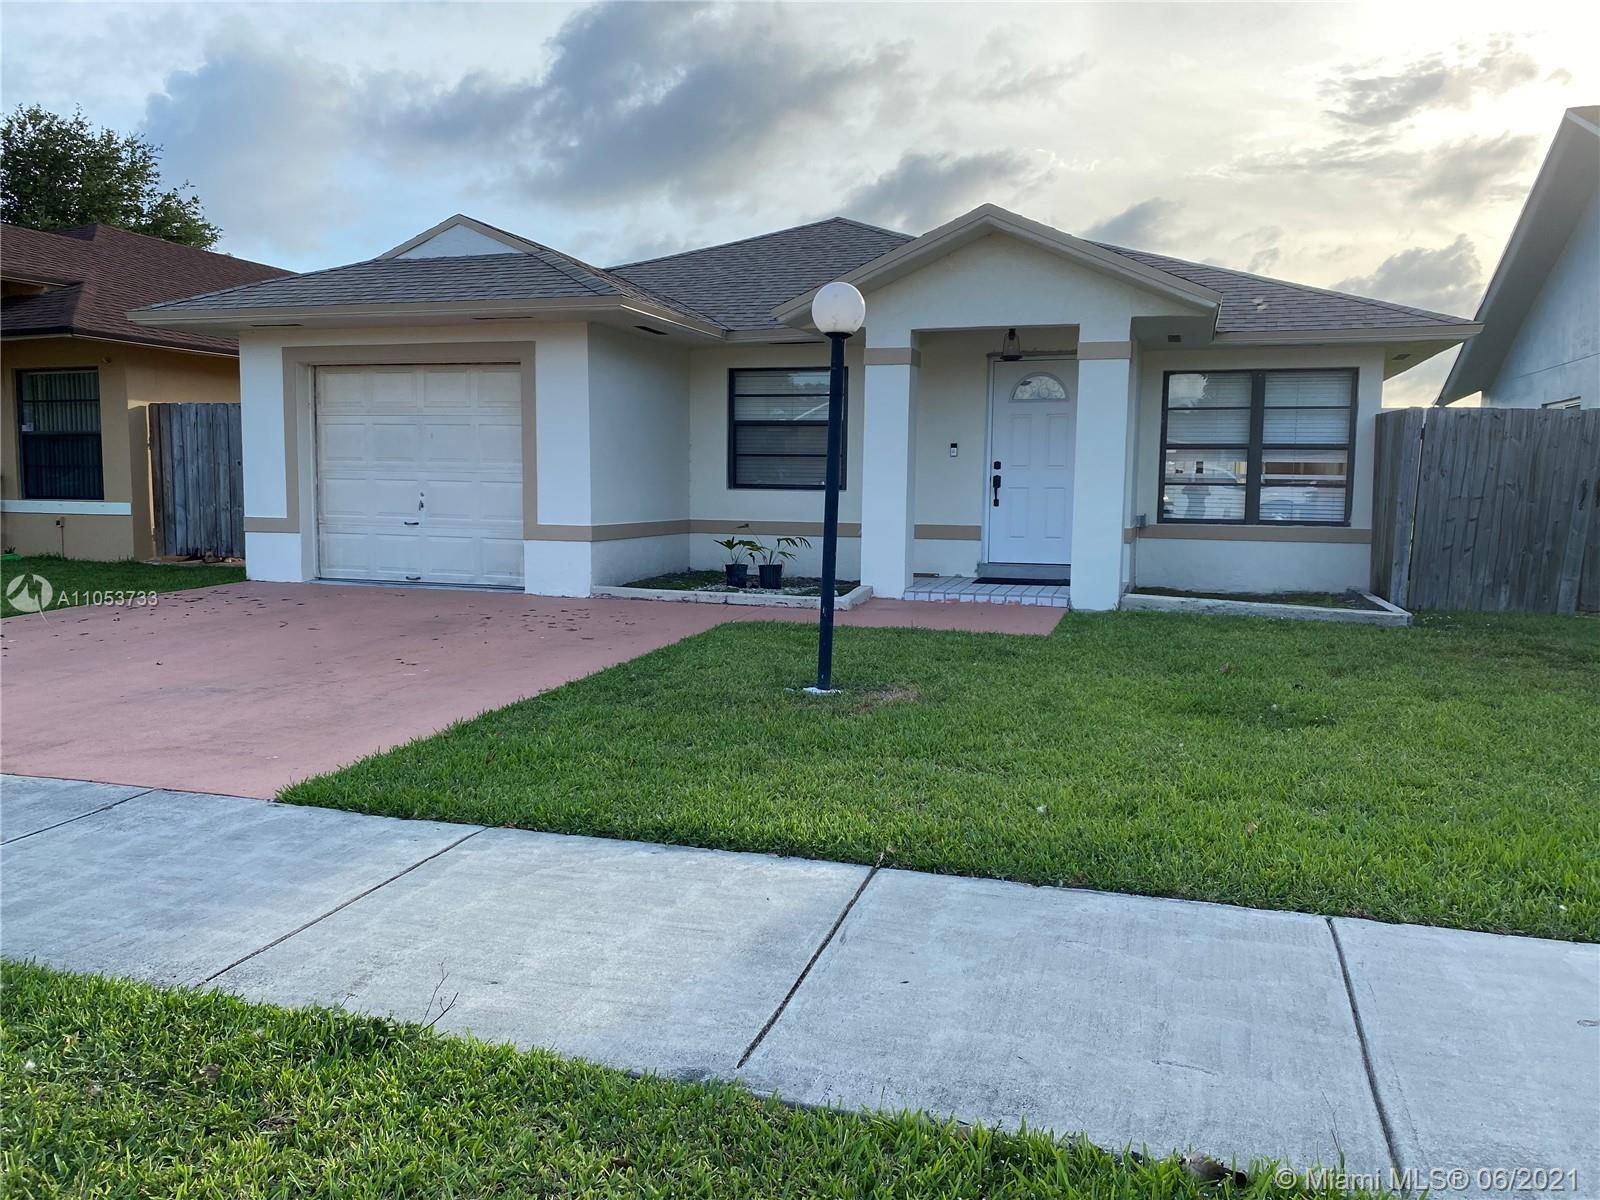 Beautiful Updated Cutler Bay Home with Canal view. This home features 3 bedrooms and 2 bathrooms with 1 car garage. The kitchen was remodeled in 2018, the appliances were installed along with a wine chiller. The Roof and A/C were installed in 2019, Electrical Panel was updated in 2020, these updates were done with permits. The bathrooms have been partially remodeled, per the owner, the shower in both bathrooms needs to be tiled to close out the plumbing permit.   Option 1: If the property is sold AS-IS, the sellers will credit 5k towards the buyer's closing cost so the buyers can finish the showers and close out the permits after closing.   Option 2: The Sellers can finish the showers and close out the permits after buyers provide written loan approval from the lender.